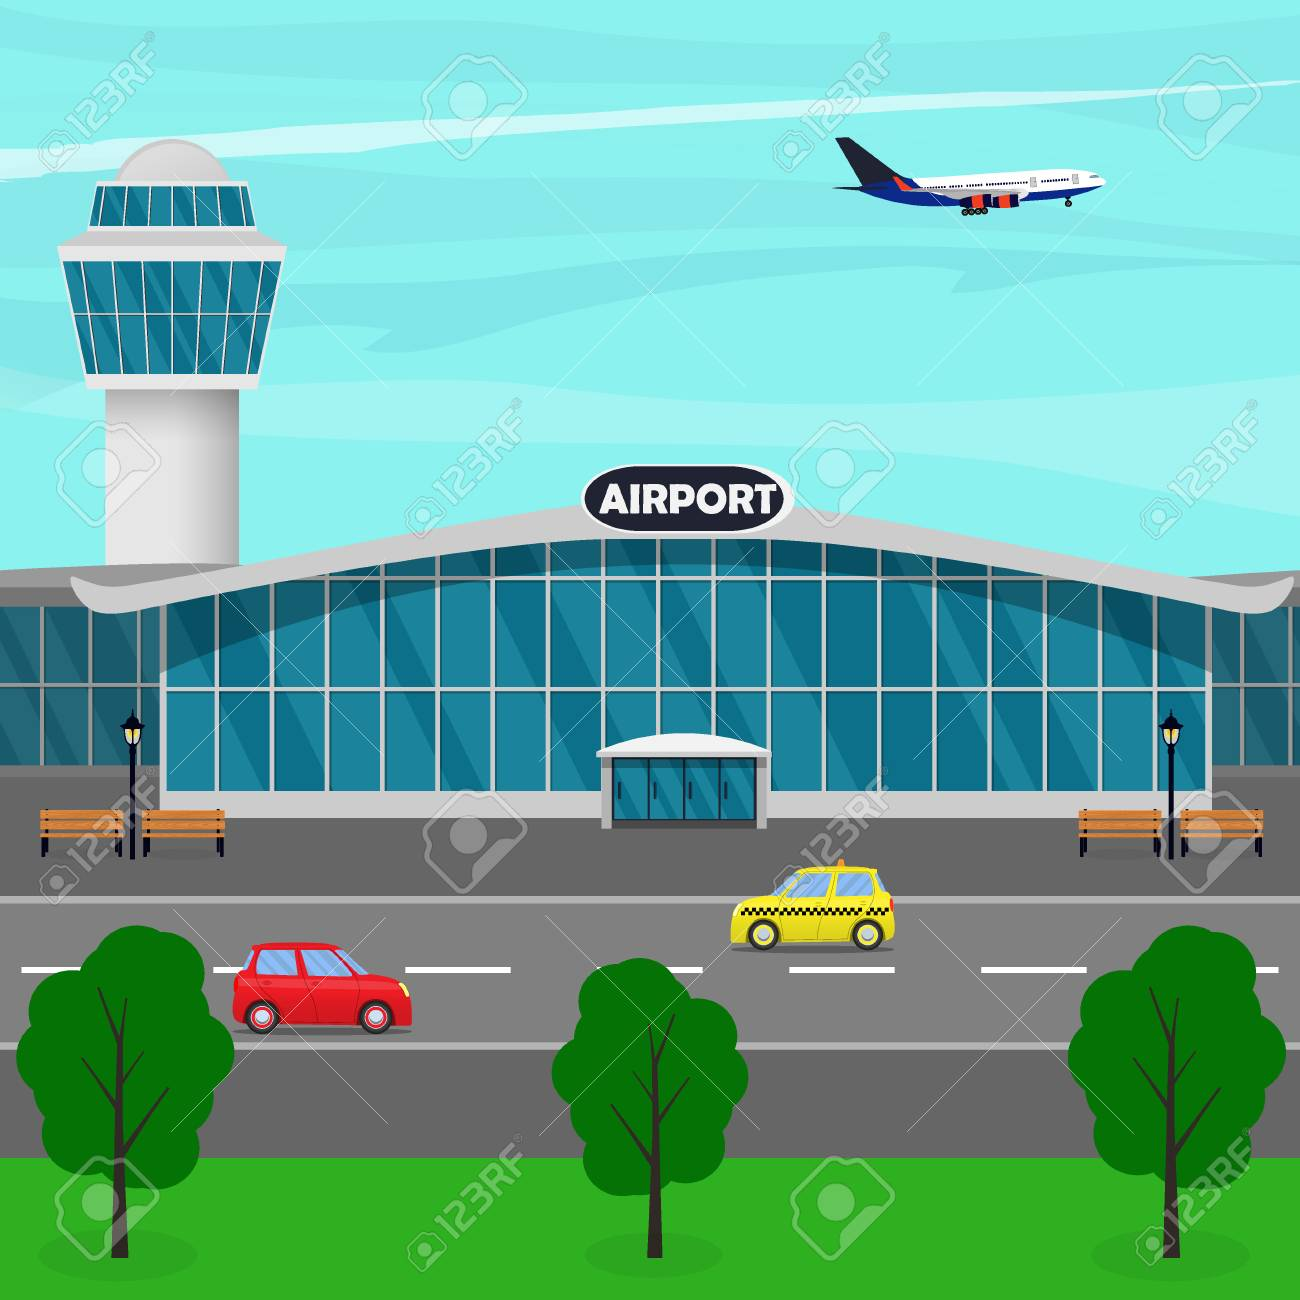 Airport clipart airport building. Terminal control tower plane